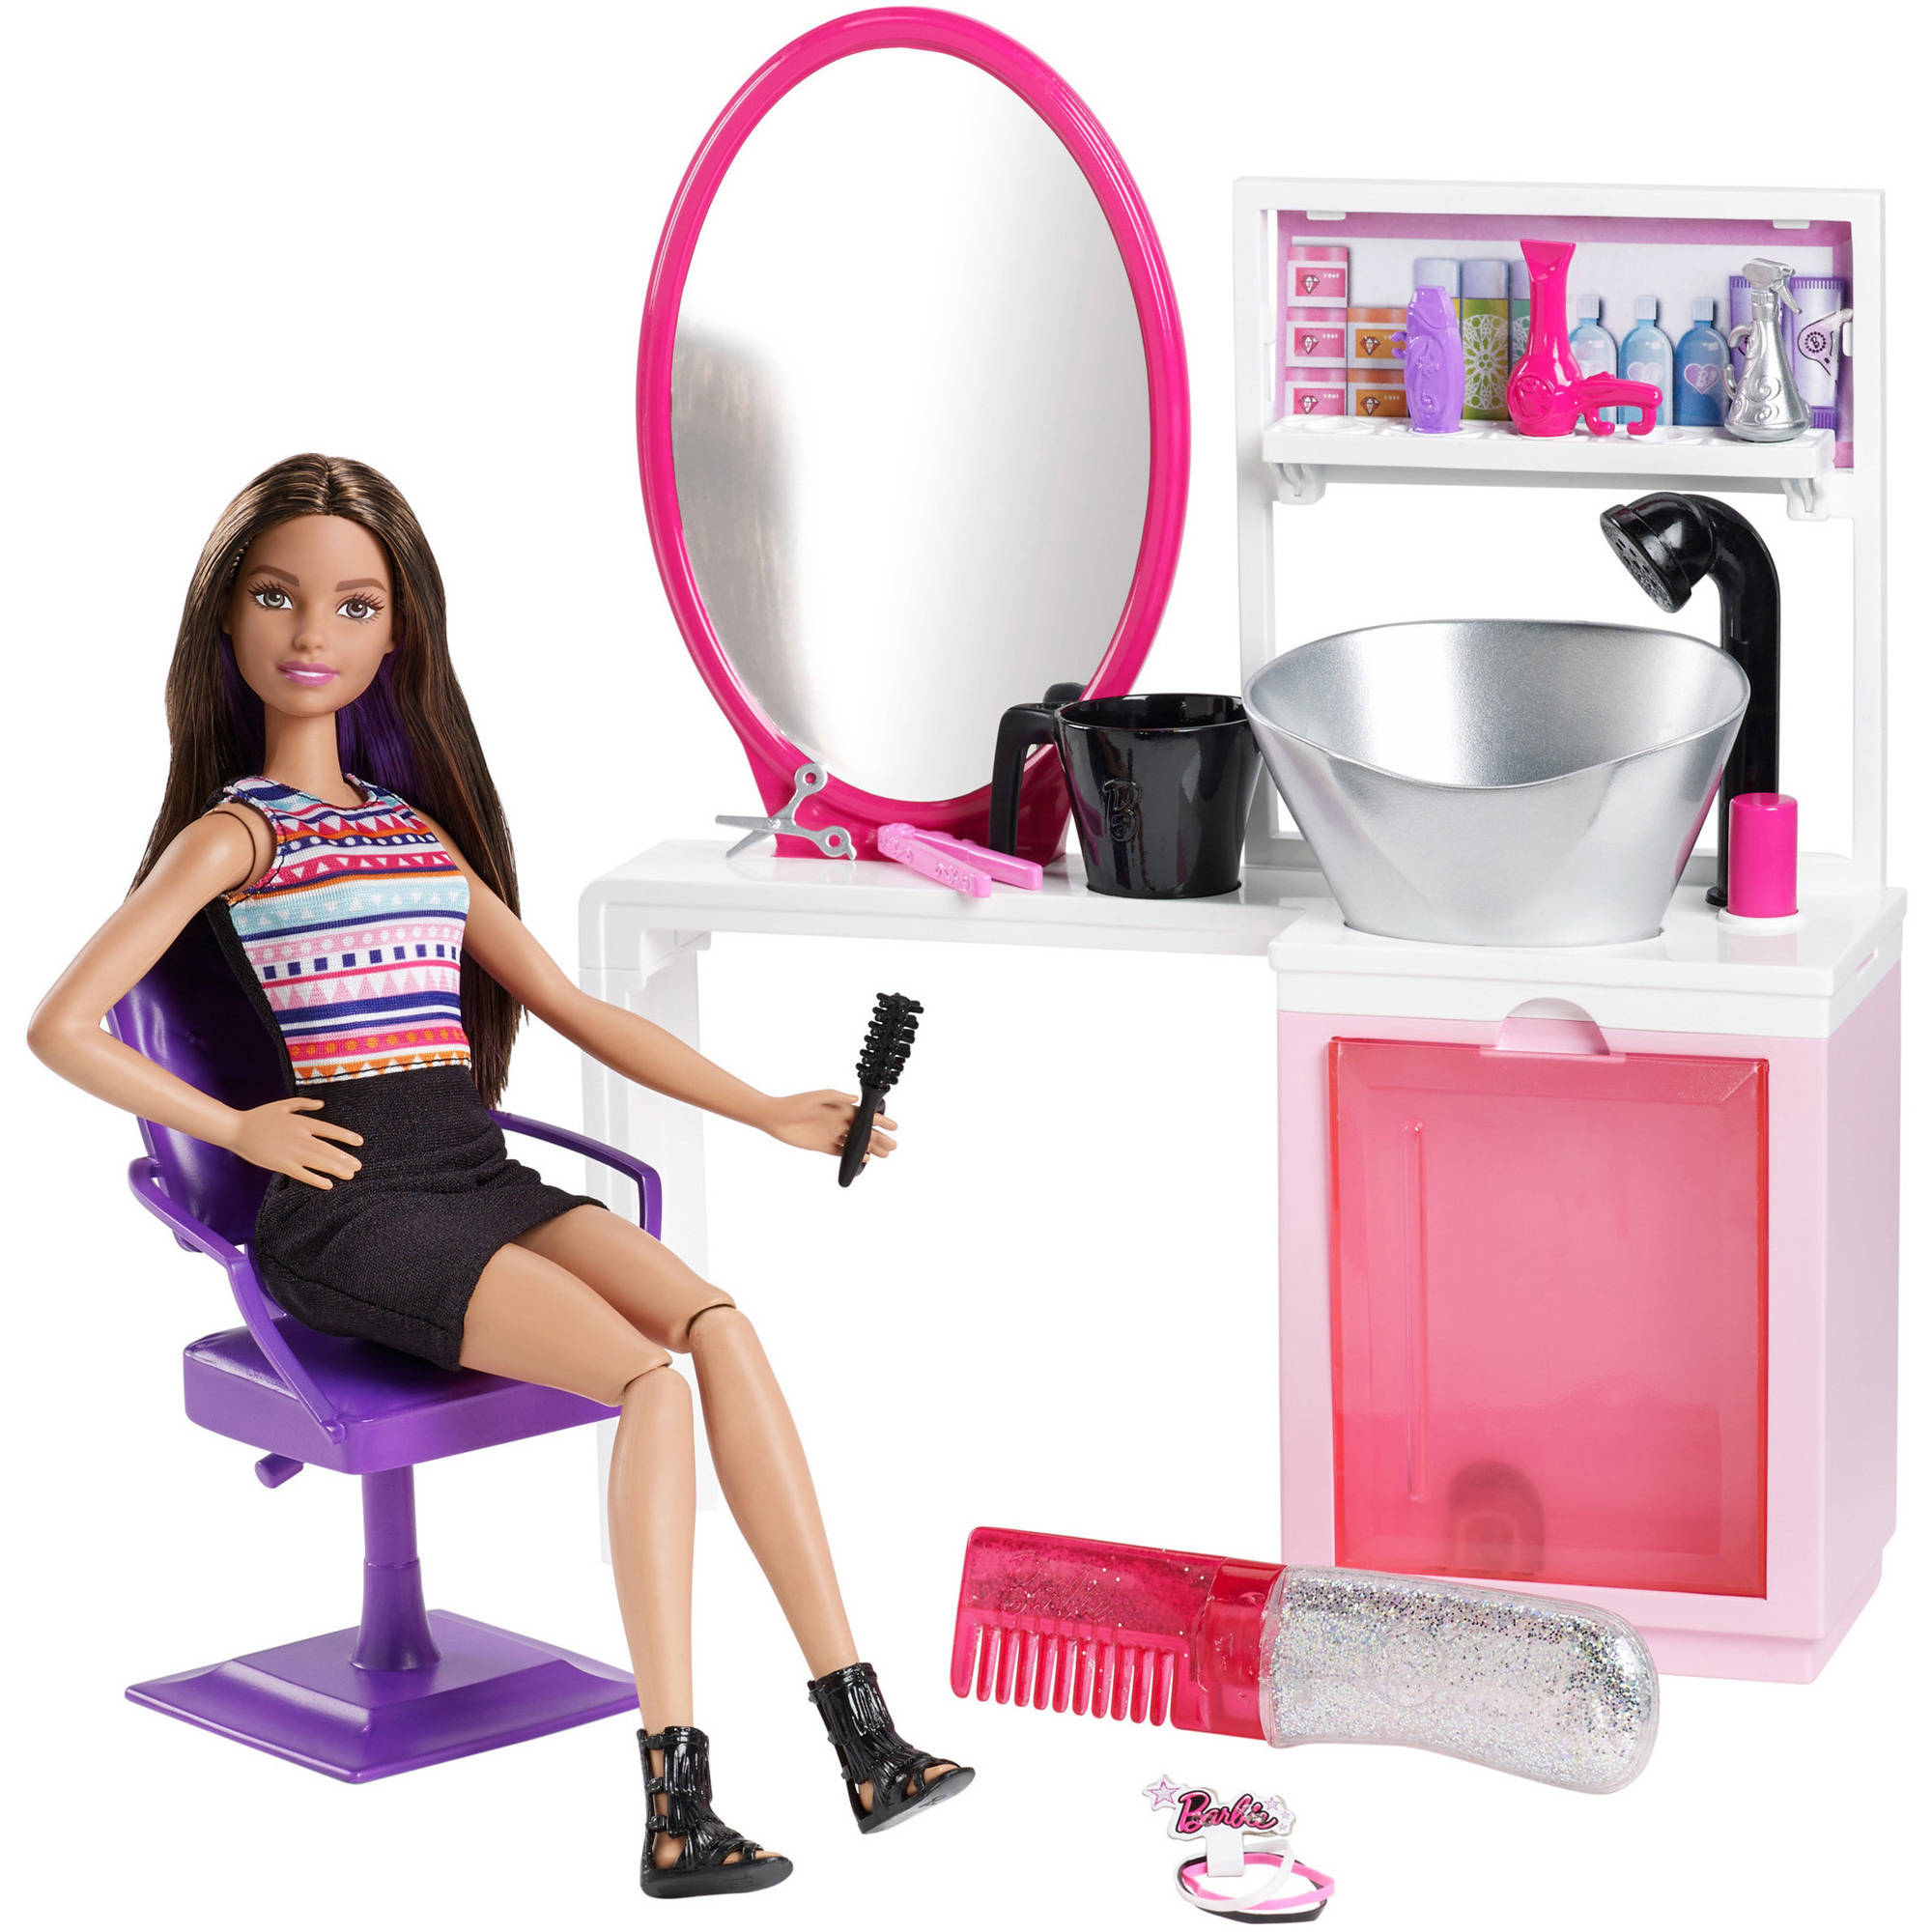 Barbie Beauty Salon and Doll, Brunette